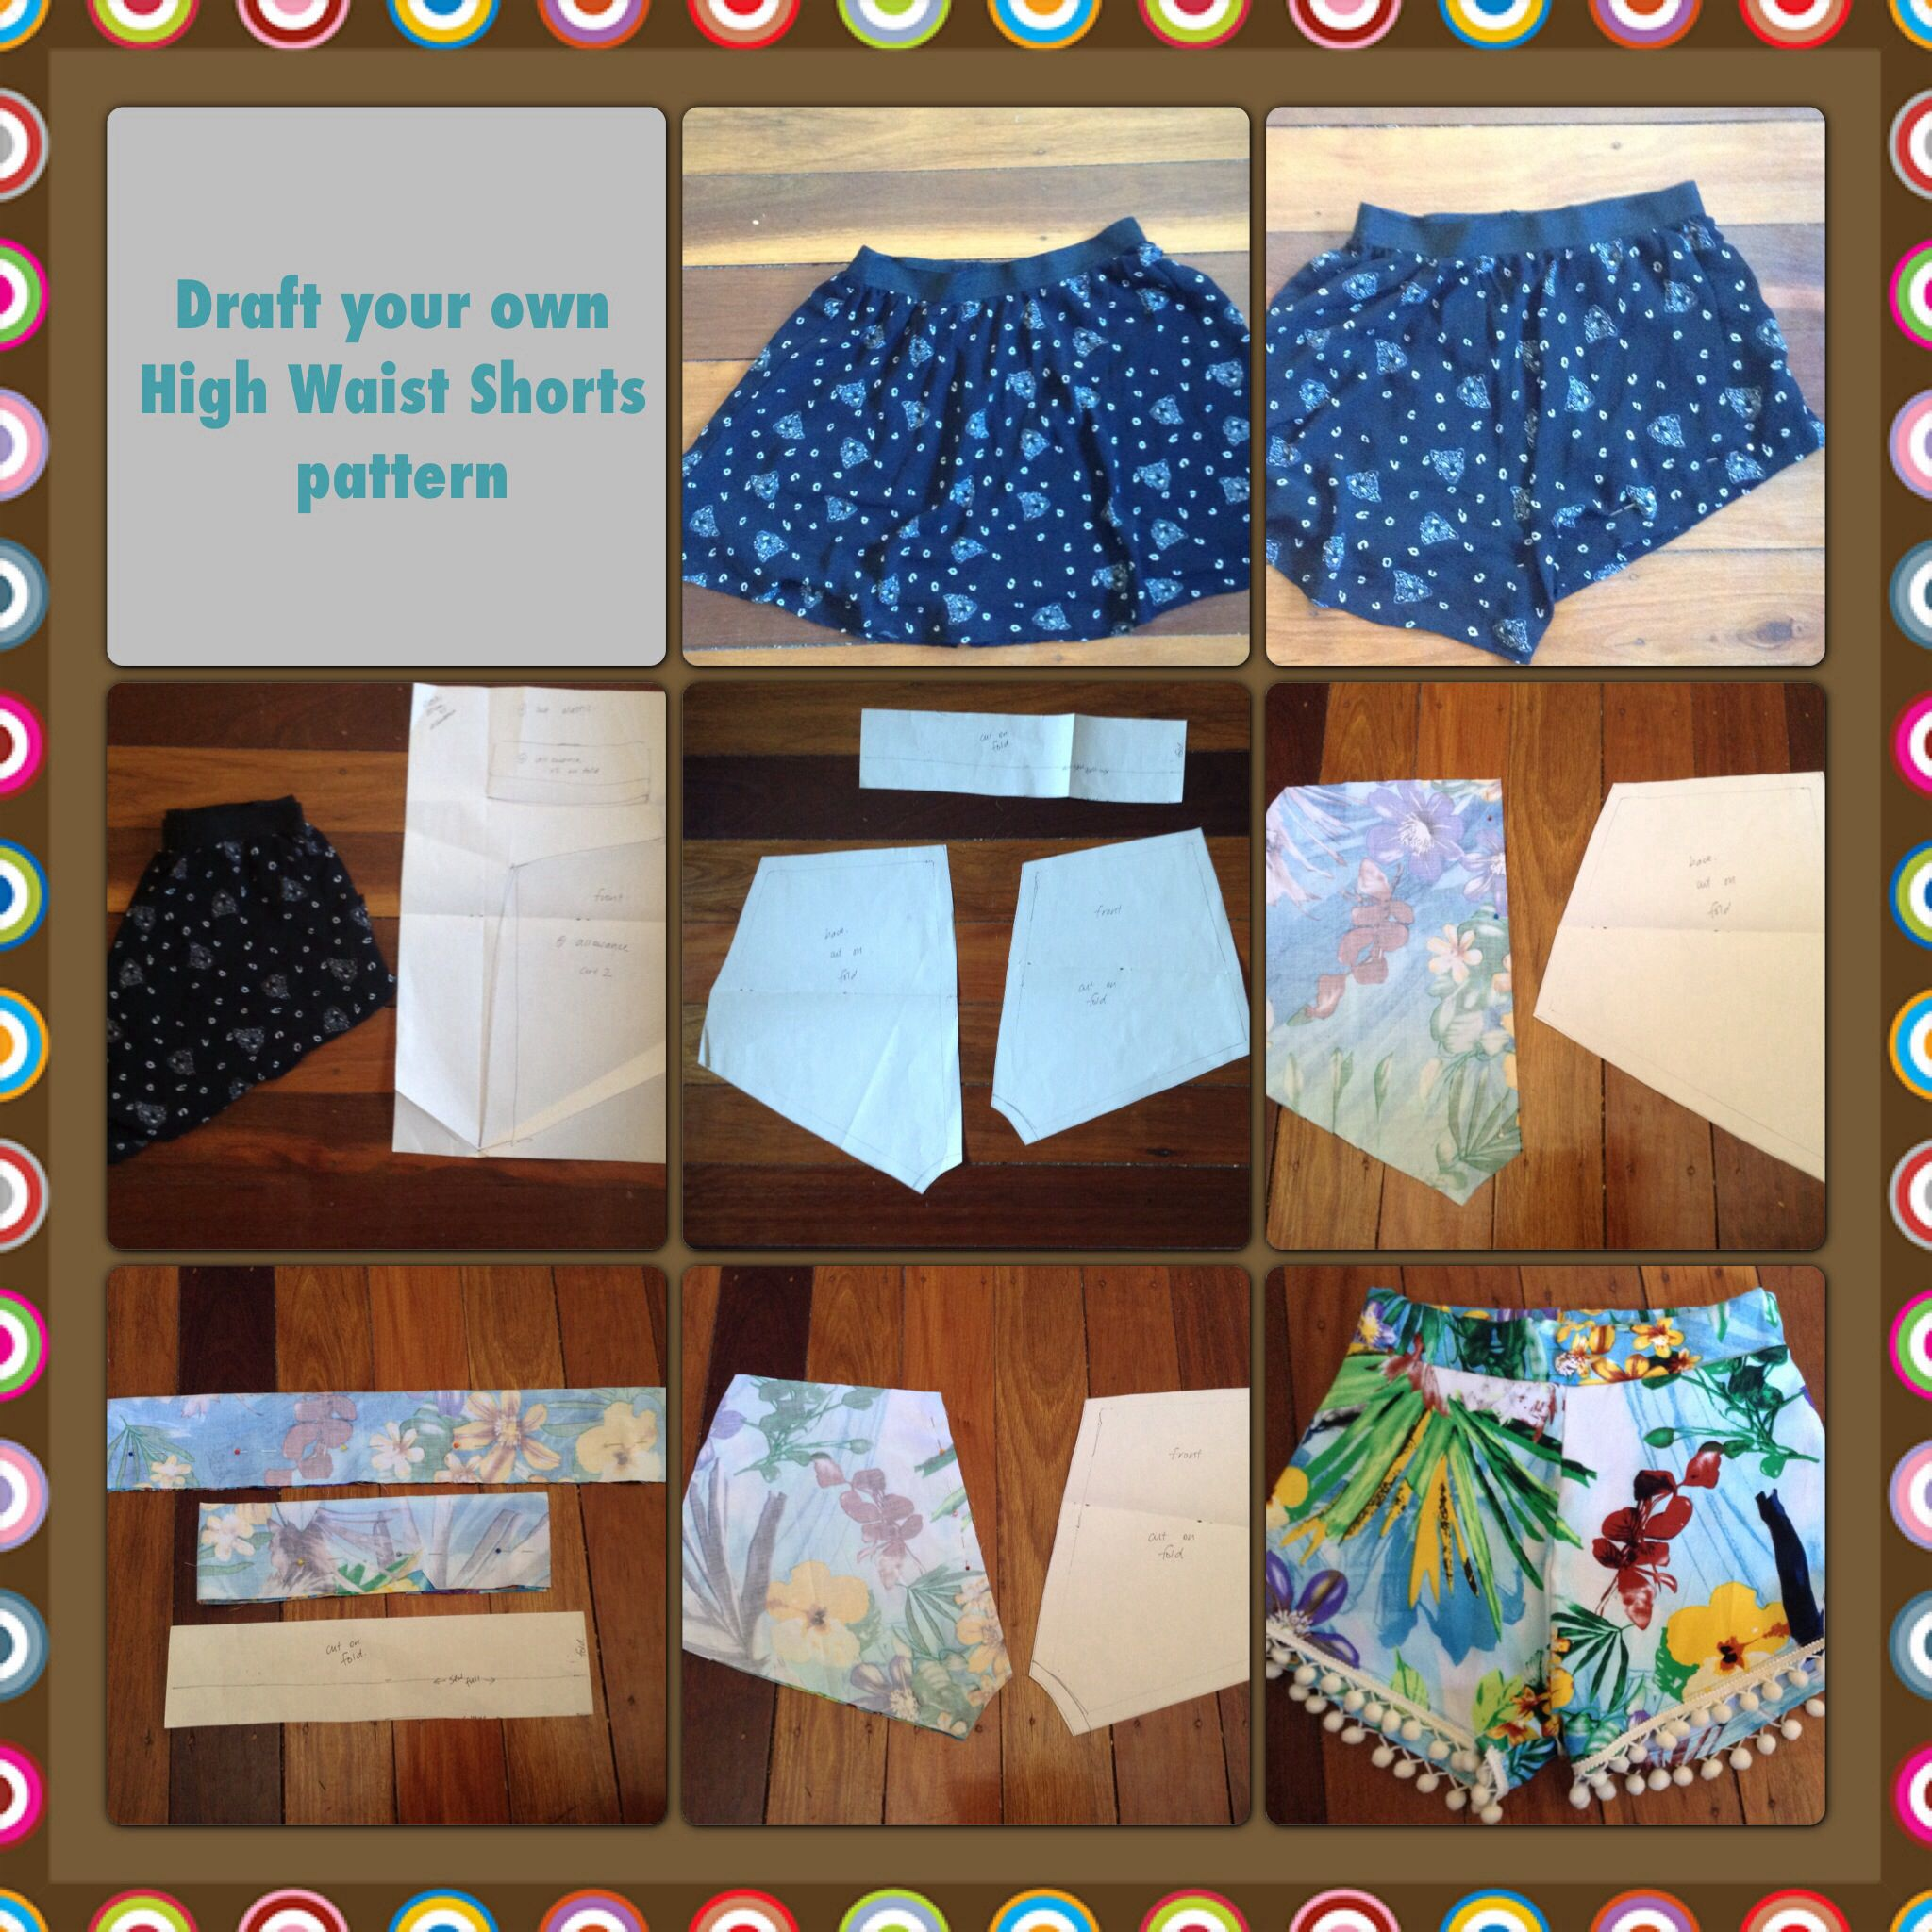 Draft your own High Waist Shorts pattern. | Things to make ...